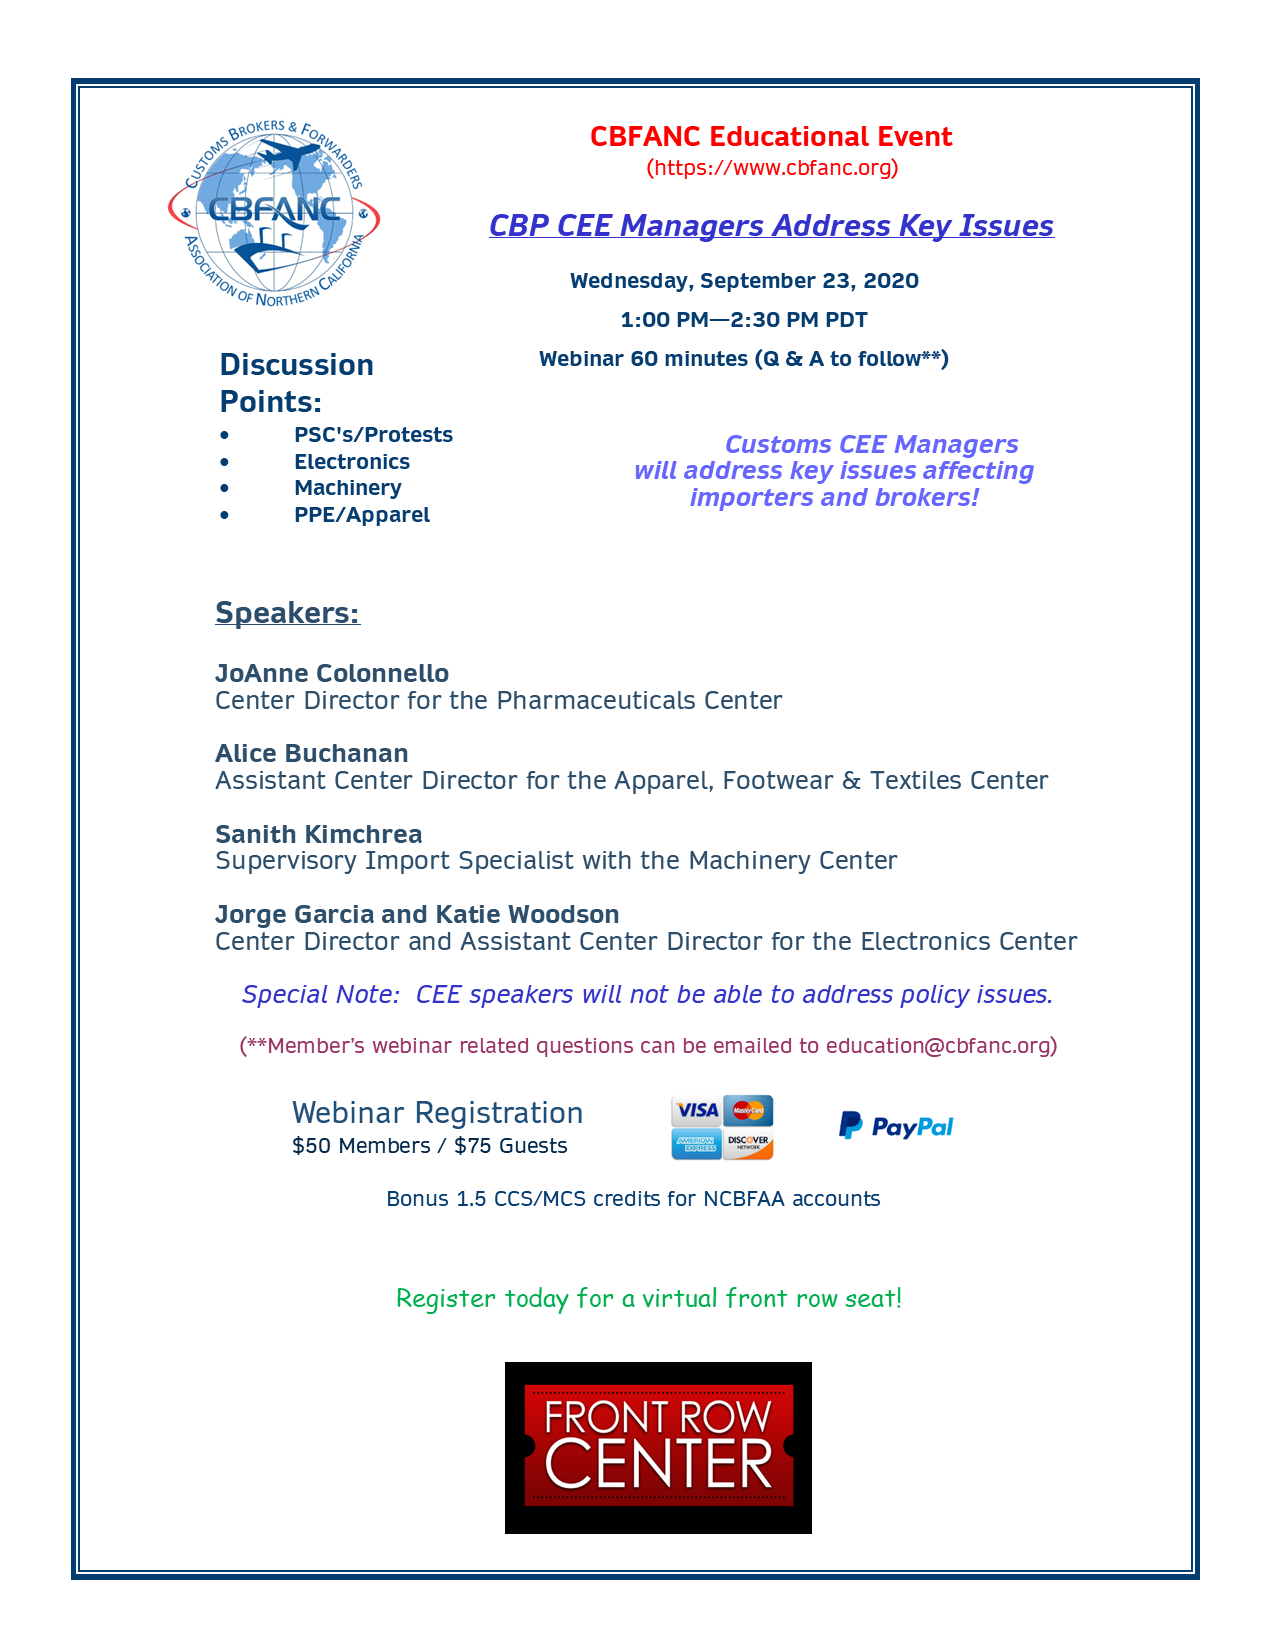 CBP CEE Managers Address Key Issues